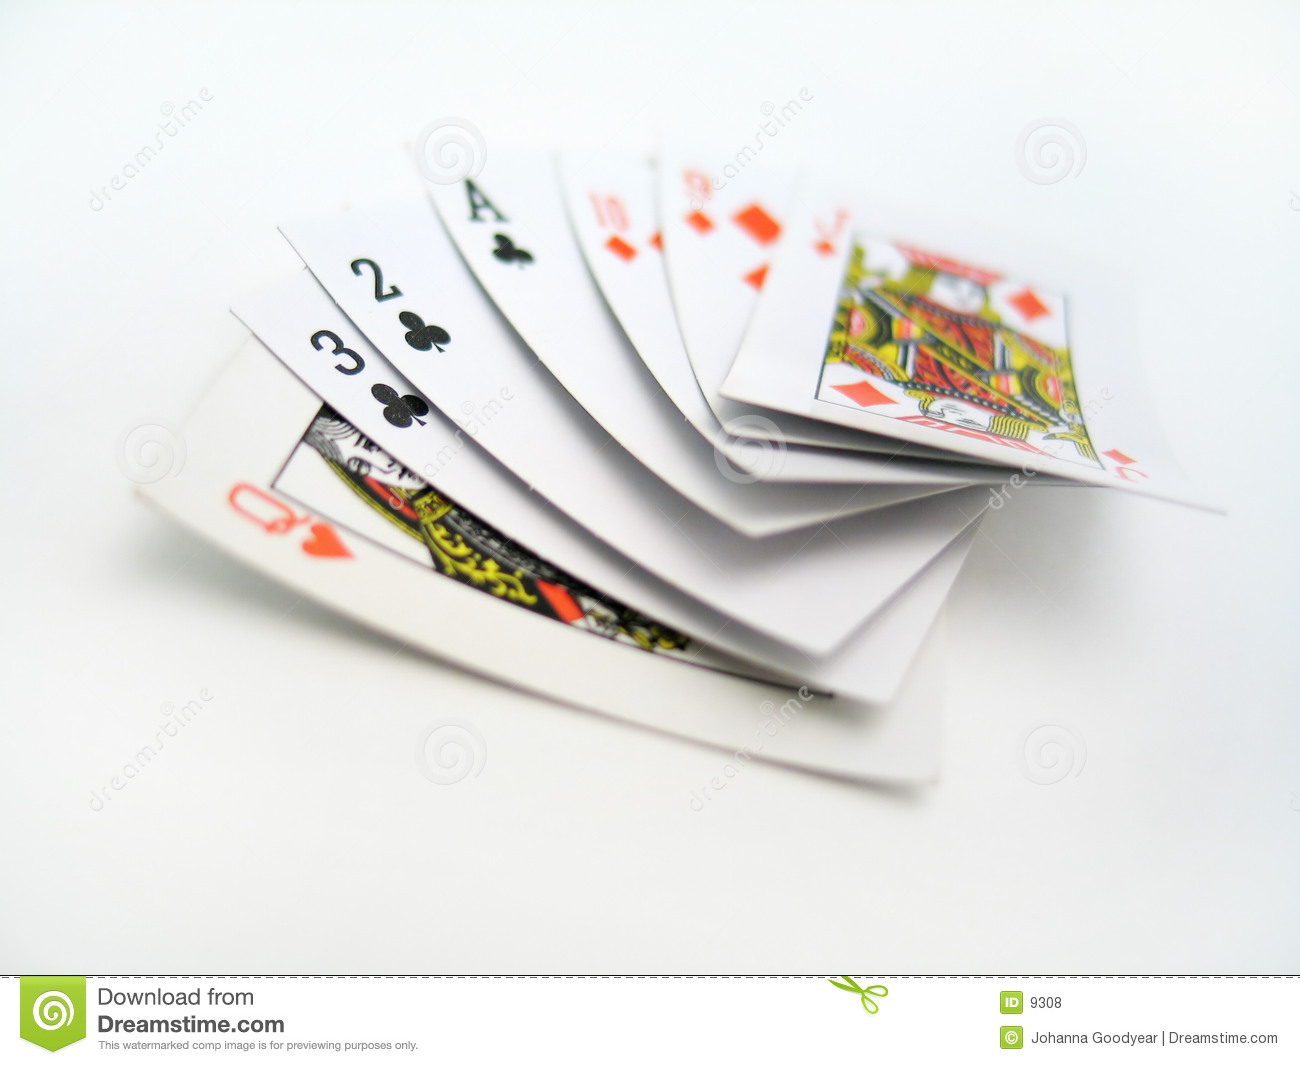 Ensemble de cartes